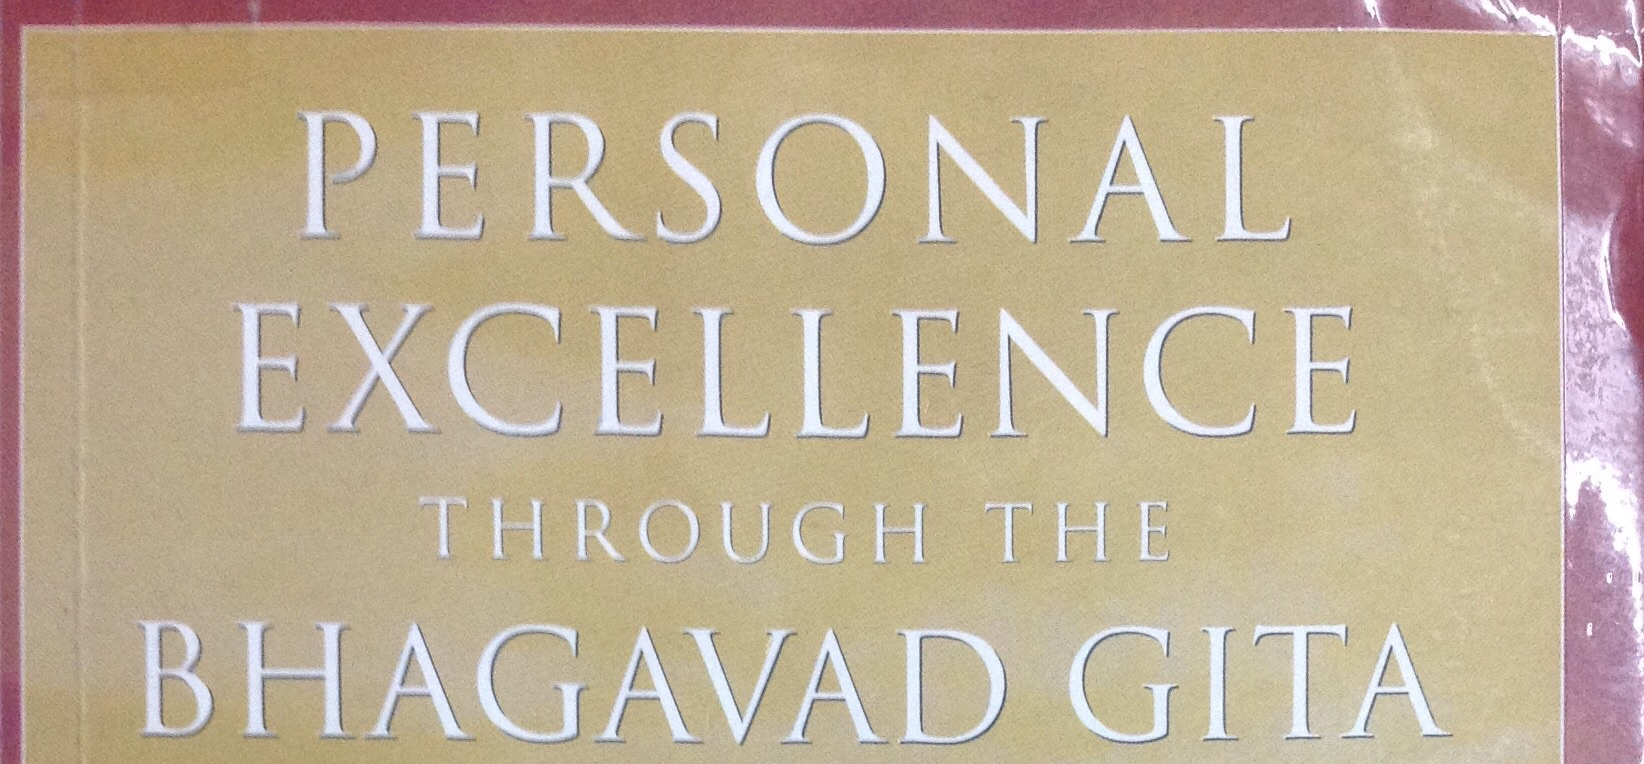 'Personal excellence through the Bhagavad Gita' by Swami Sukhabodhananda: Part1